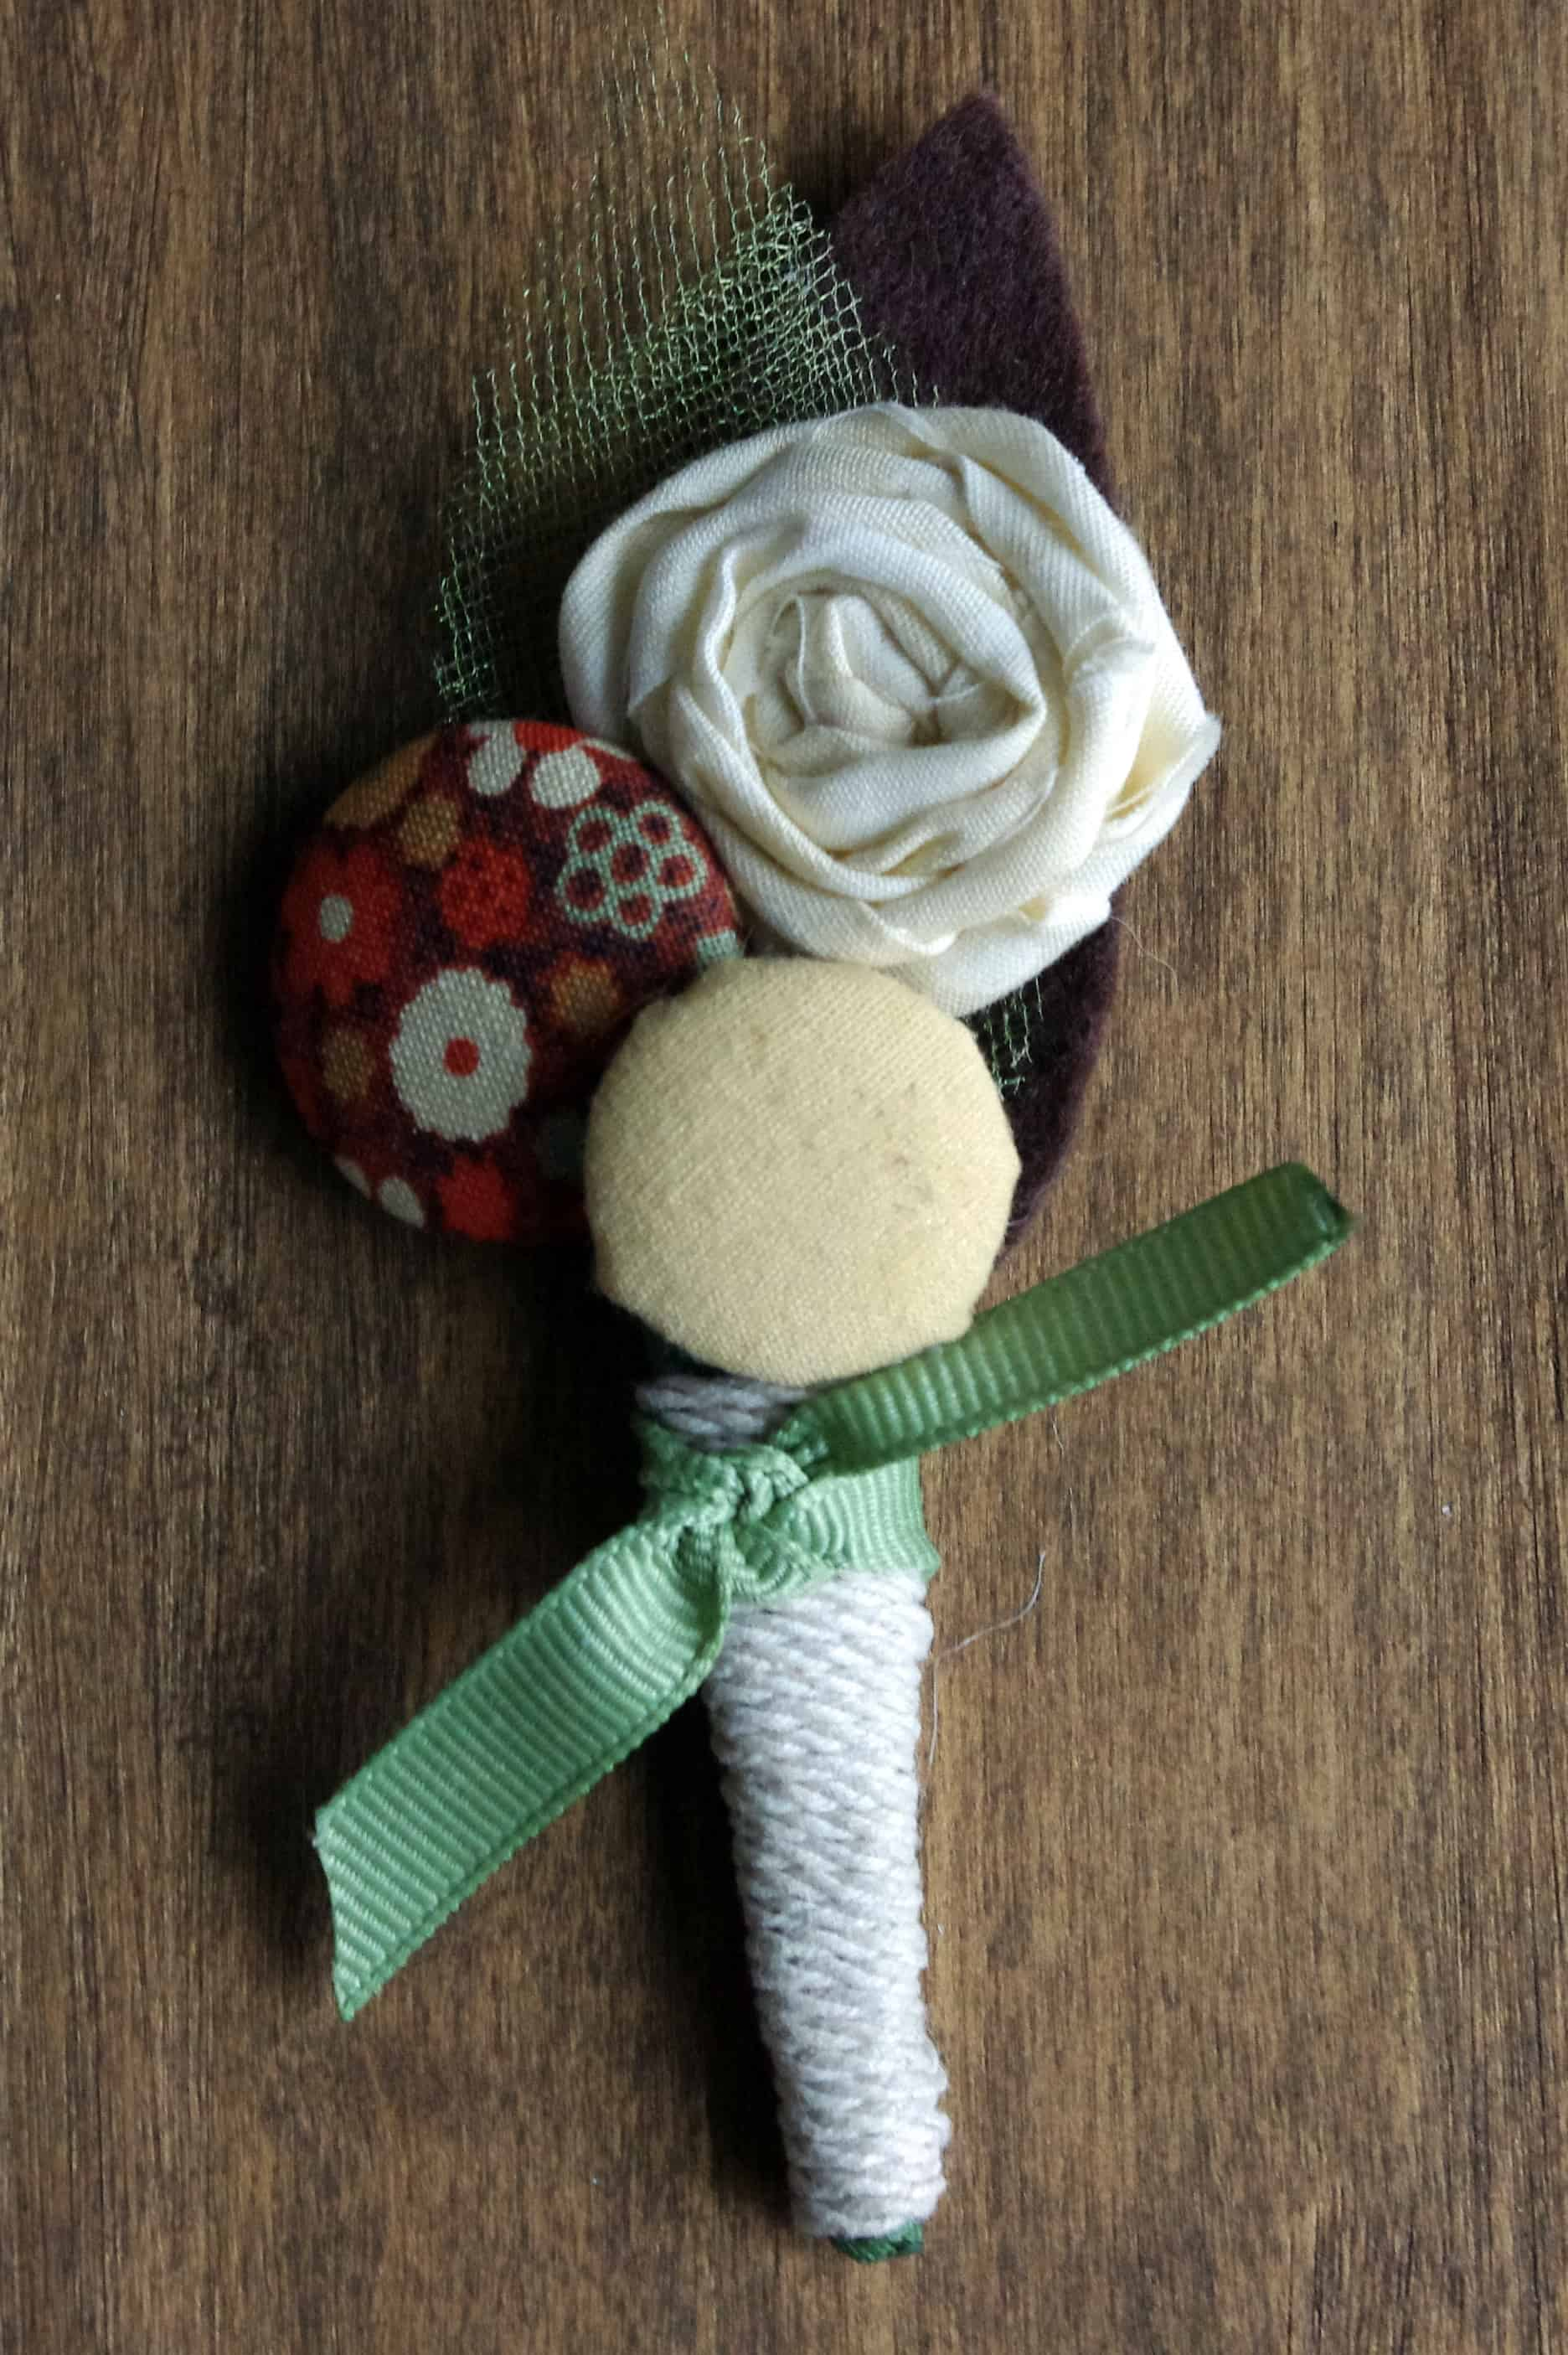 Fabric covered buttons and material wrapped roses